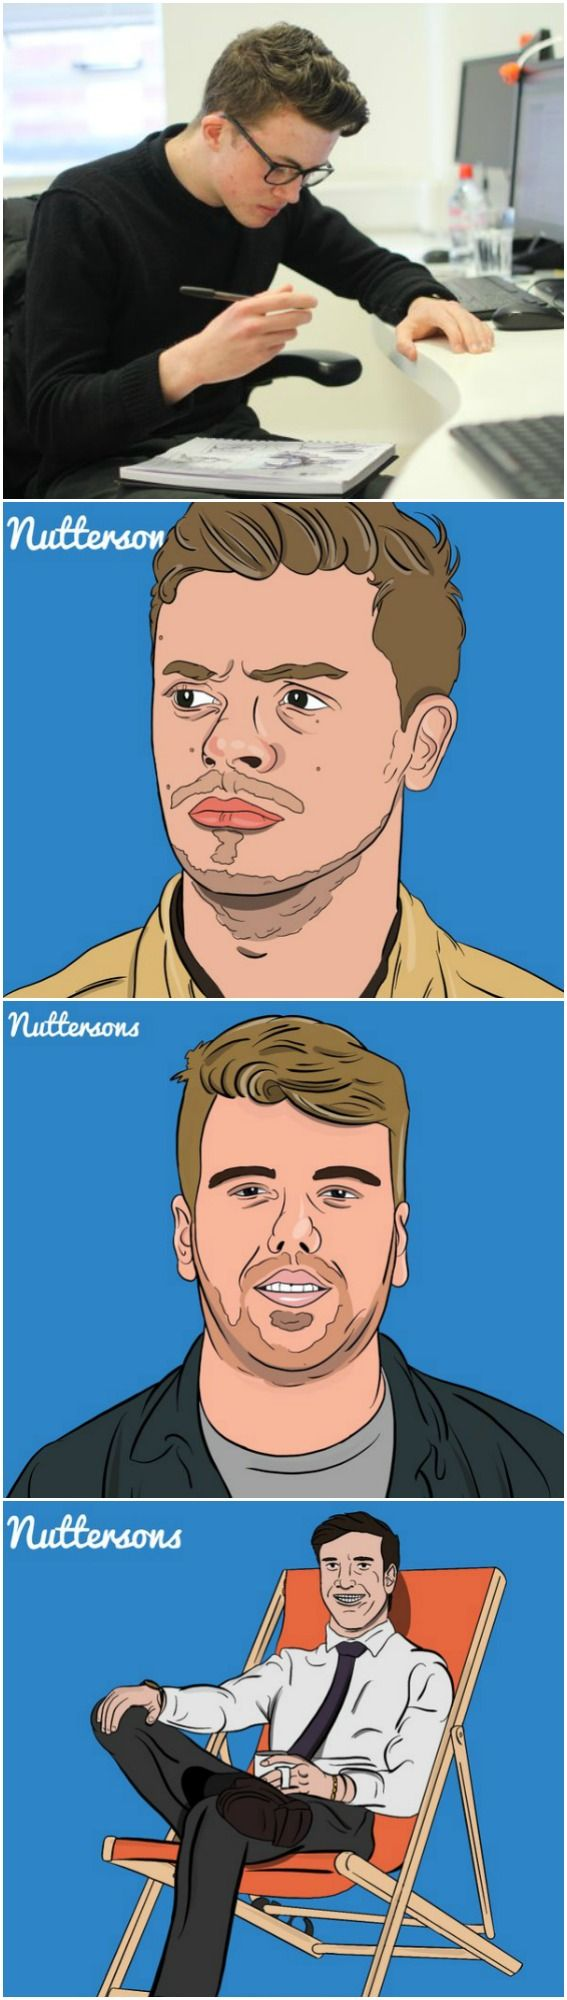 We are very happy that our new apprentice illustrator Ben has joined the team and is producing such an amazing work. Look at these illustrations of our colleagues! Cannot wait for more of his creations!